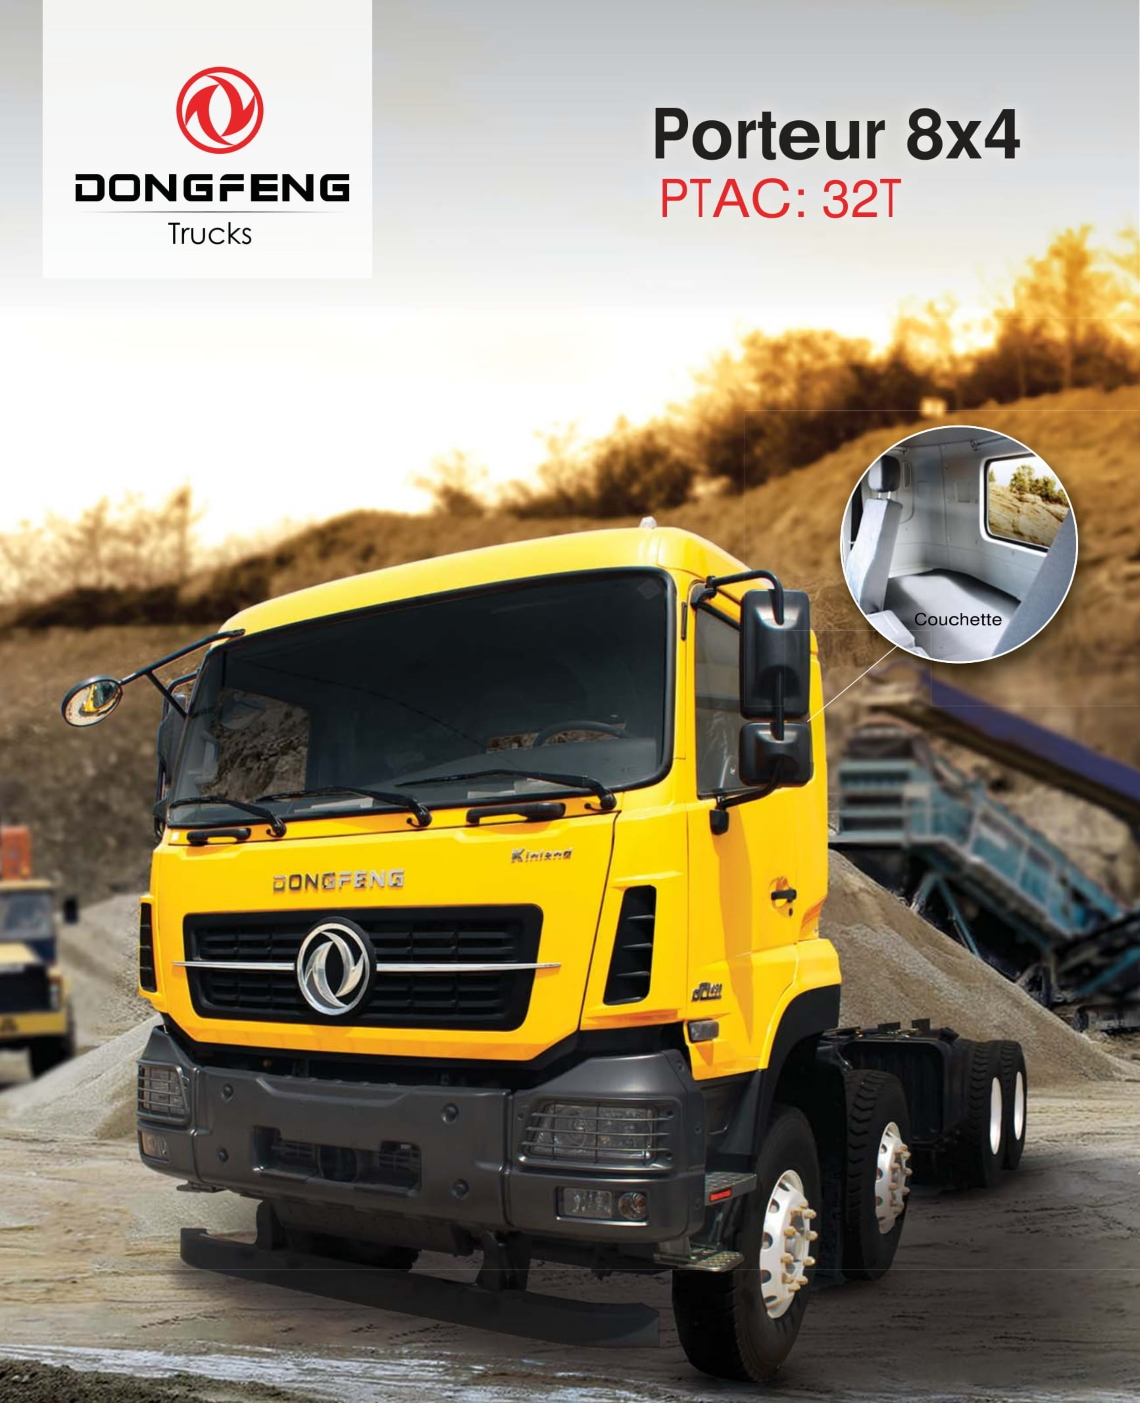 Prix camion Dongfeng Porteur 8×4 neuf Tunisie